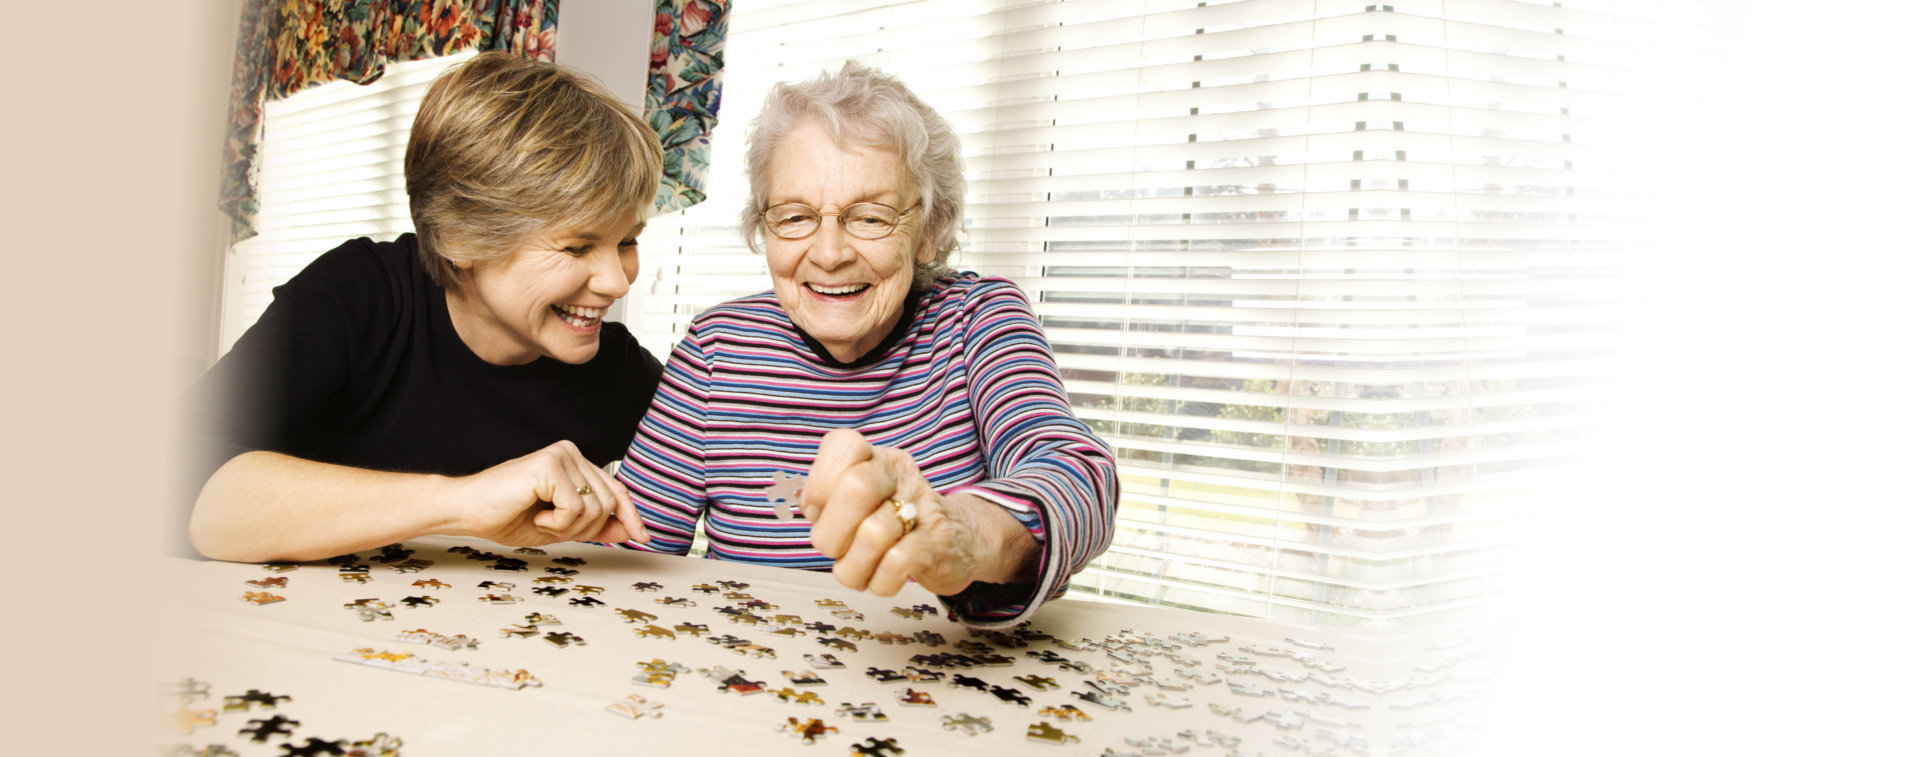 caregiver and elderly woman playing jigsaw puzzle